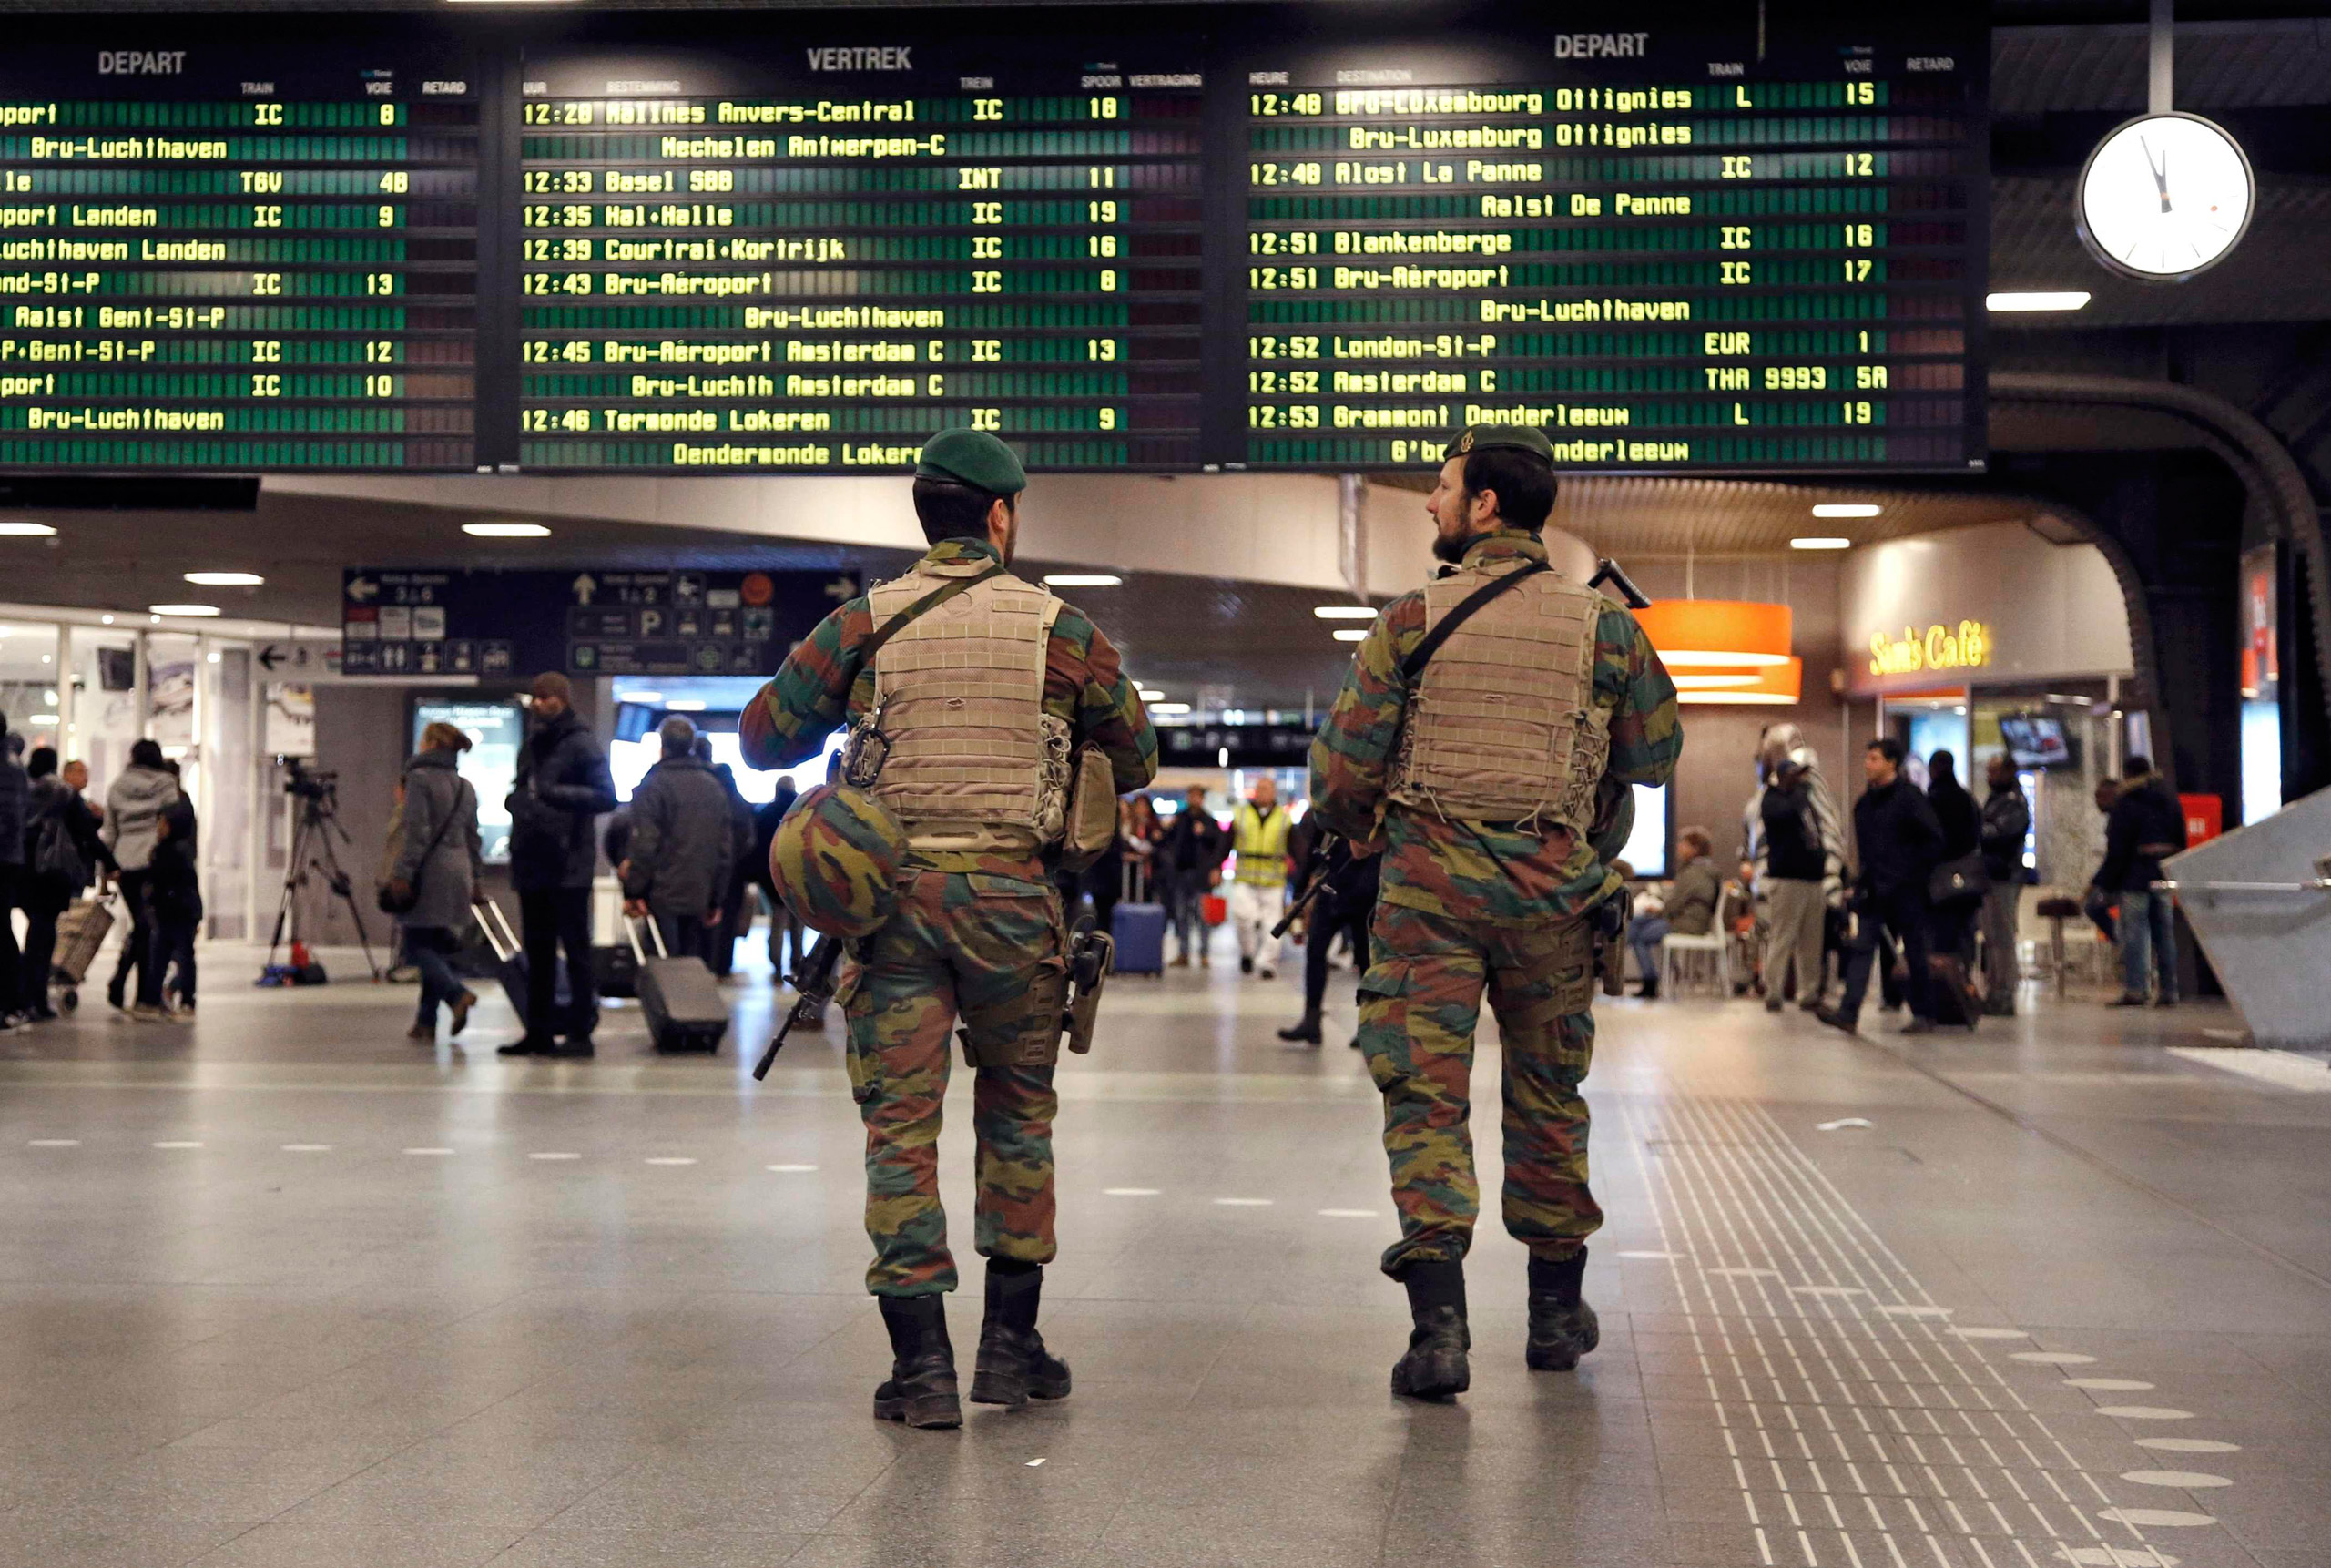 Belgian soldiers patrol in the arrival hall at Midi railway station, after security was tightened following the fatal attacks in Paris, in Brussels, on Nov. 21, 2015,